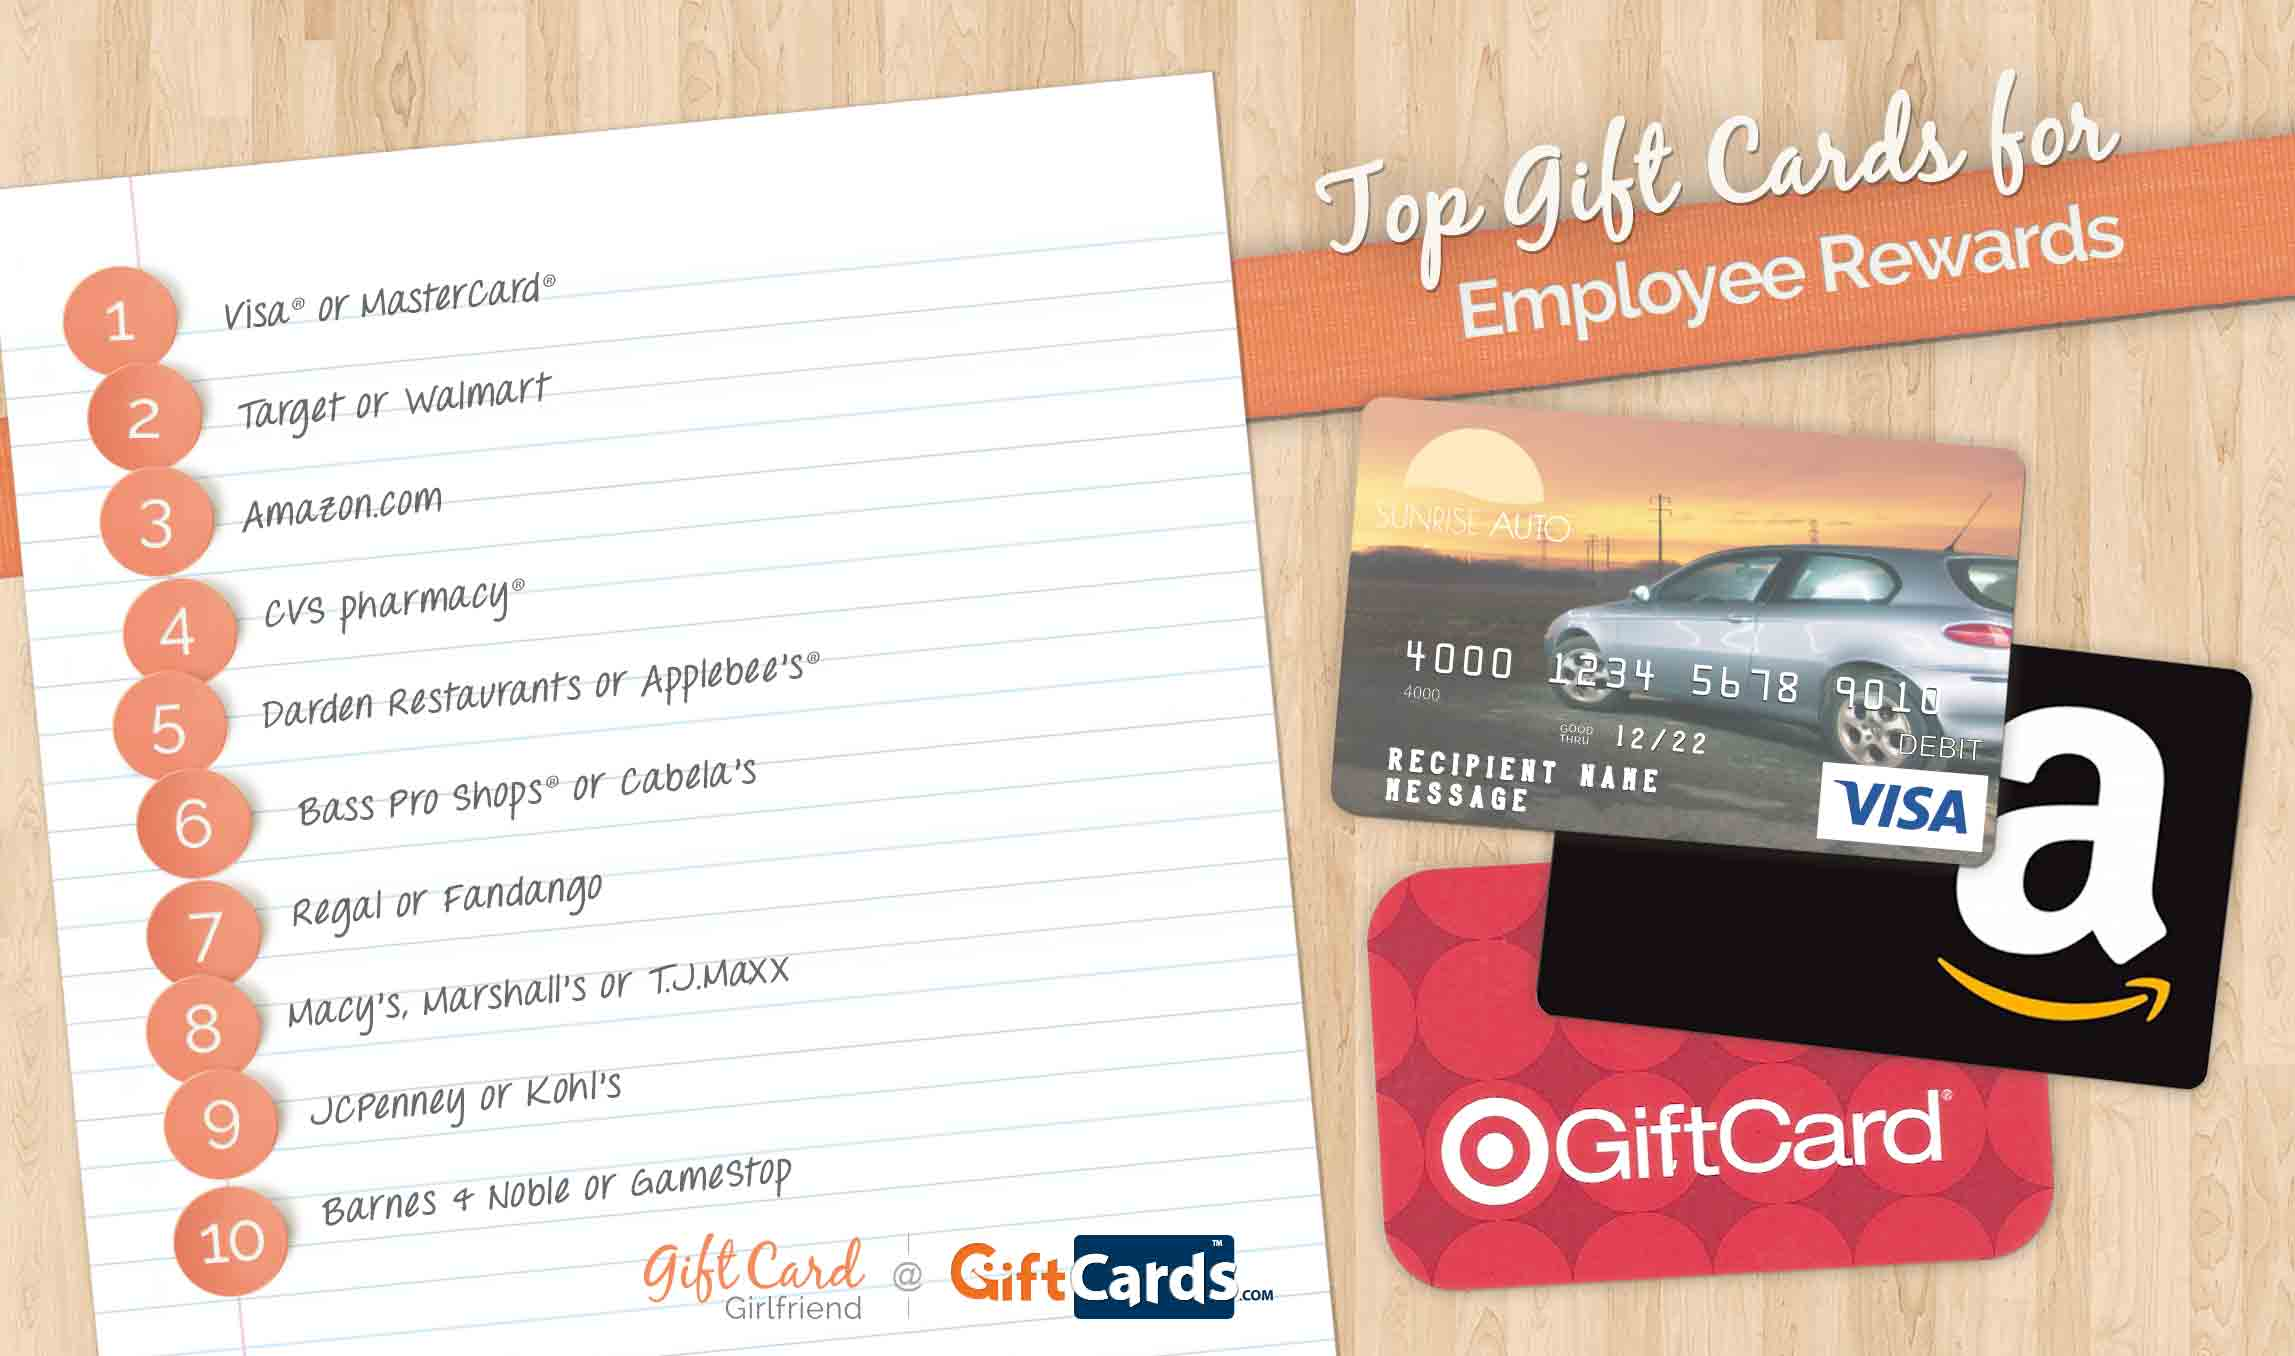 Top 10 Gift Cards For Employee Rewards Gcg